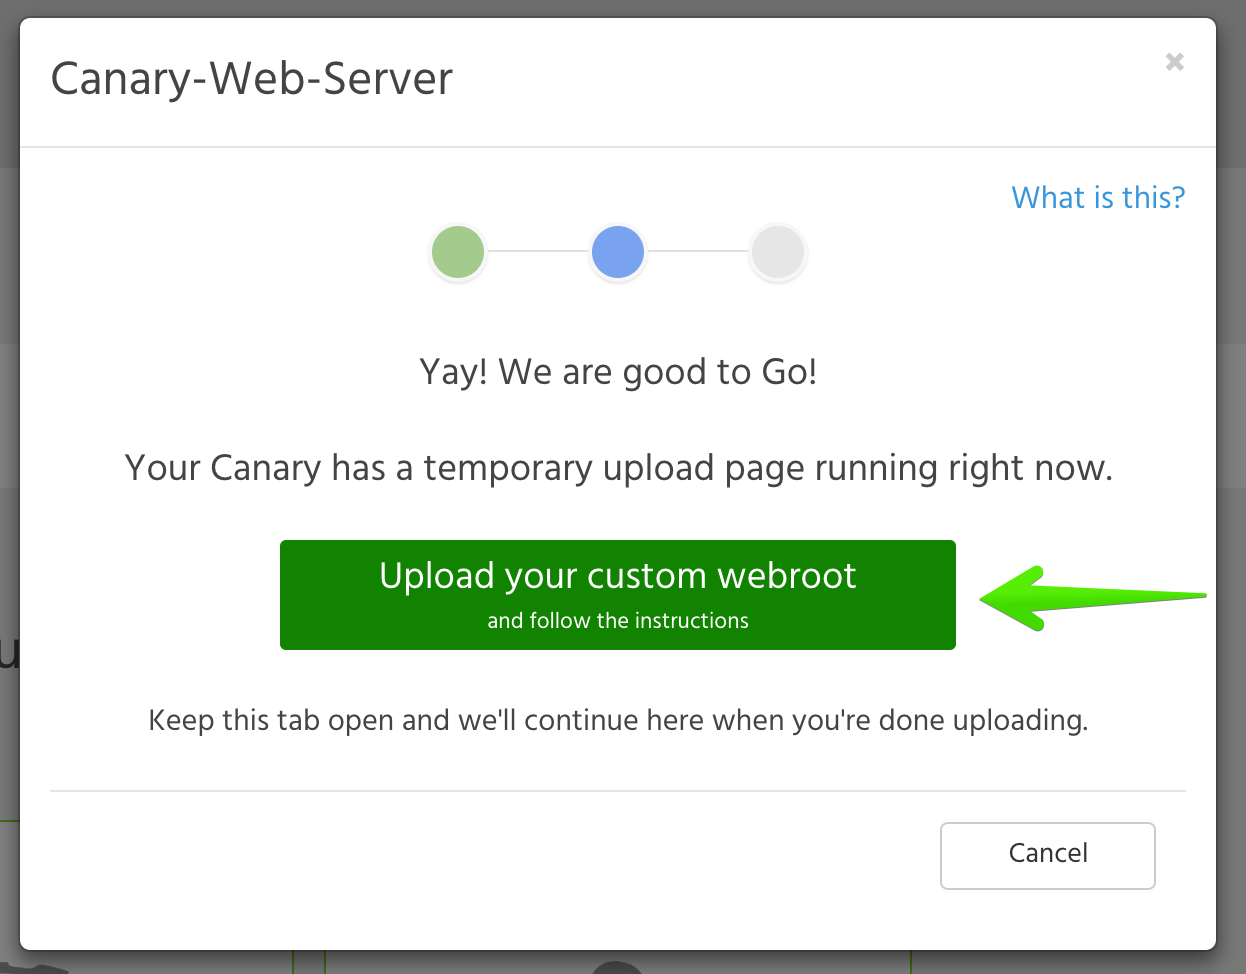 Remotely upload custom webroots to your Canary